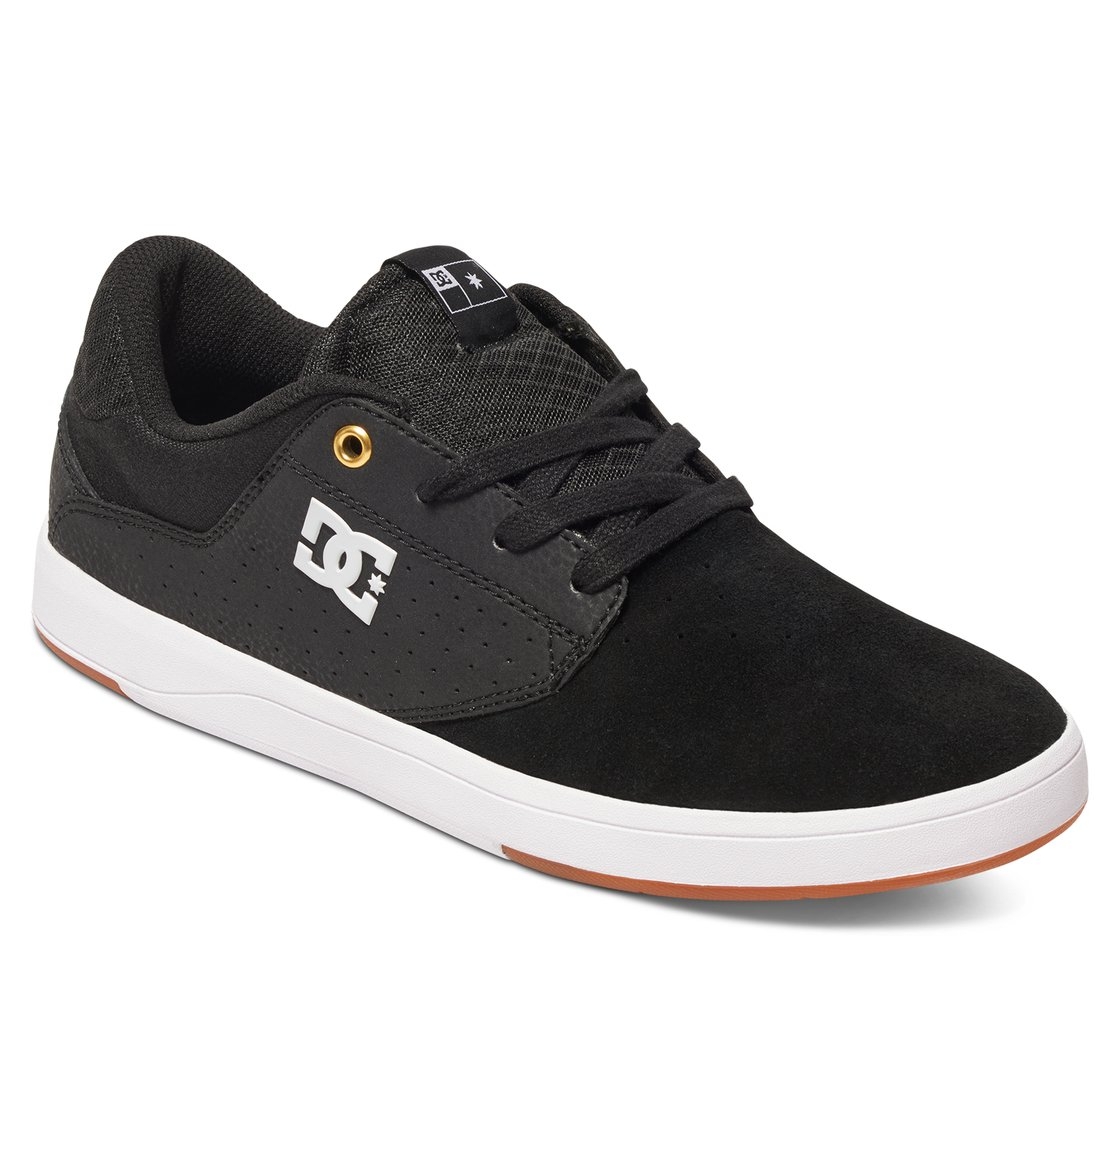 plaza tc s chaussures de skate adys100319 dc shoes. Black Bedroom Furniture Sets. Home Design Ideas